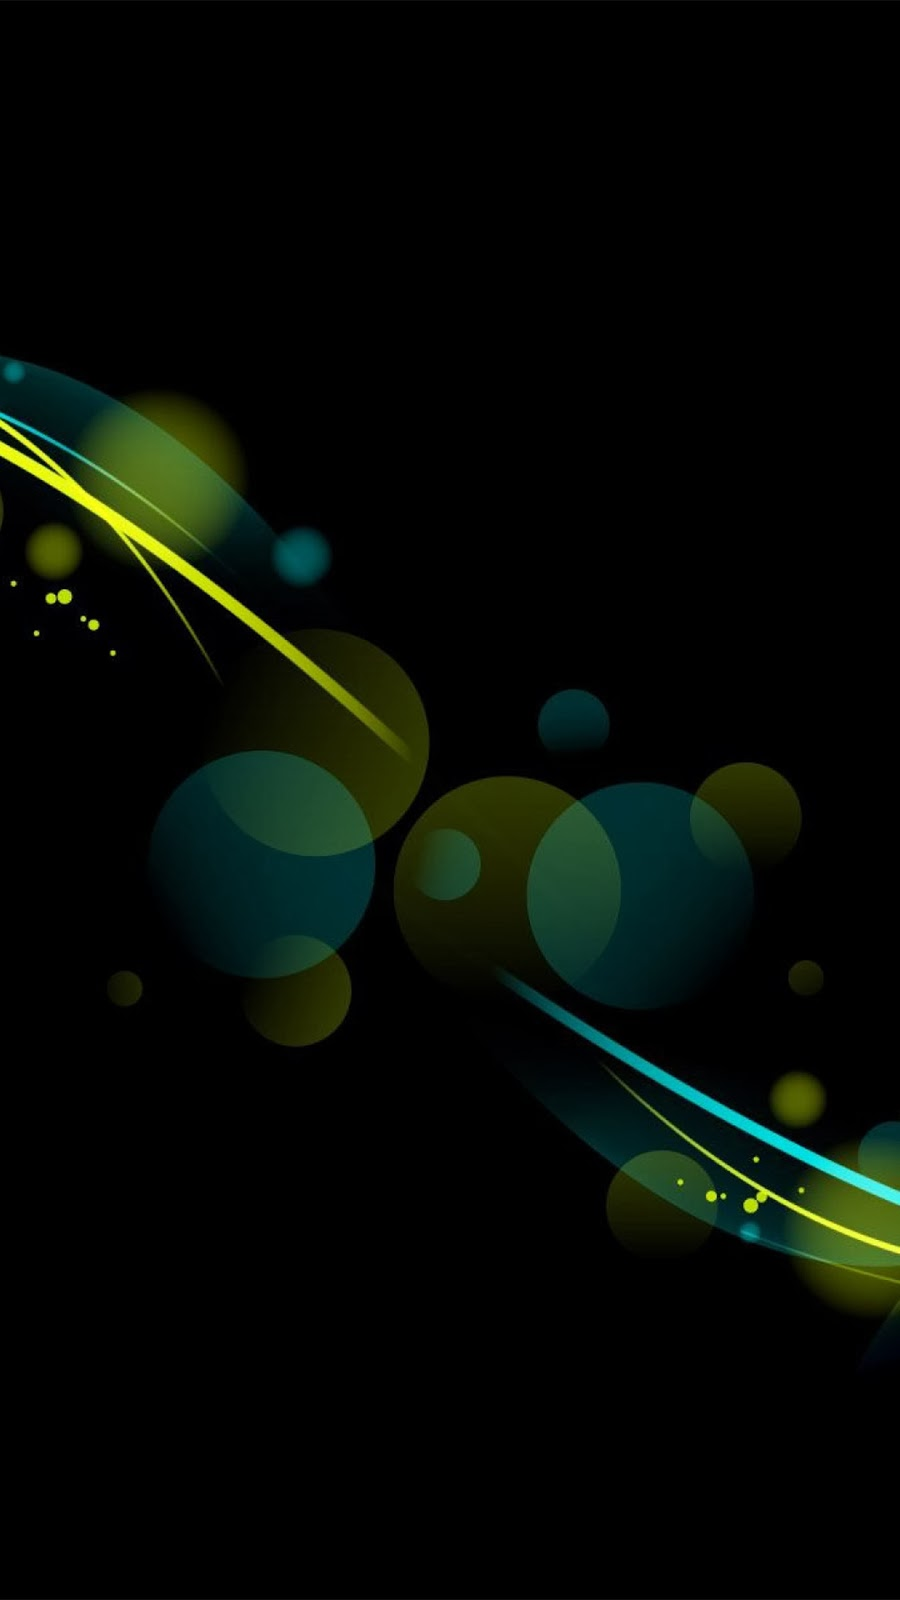 samsung galaxy grand 2 wallpaper blackberry themes